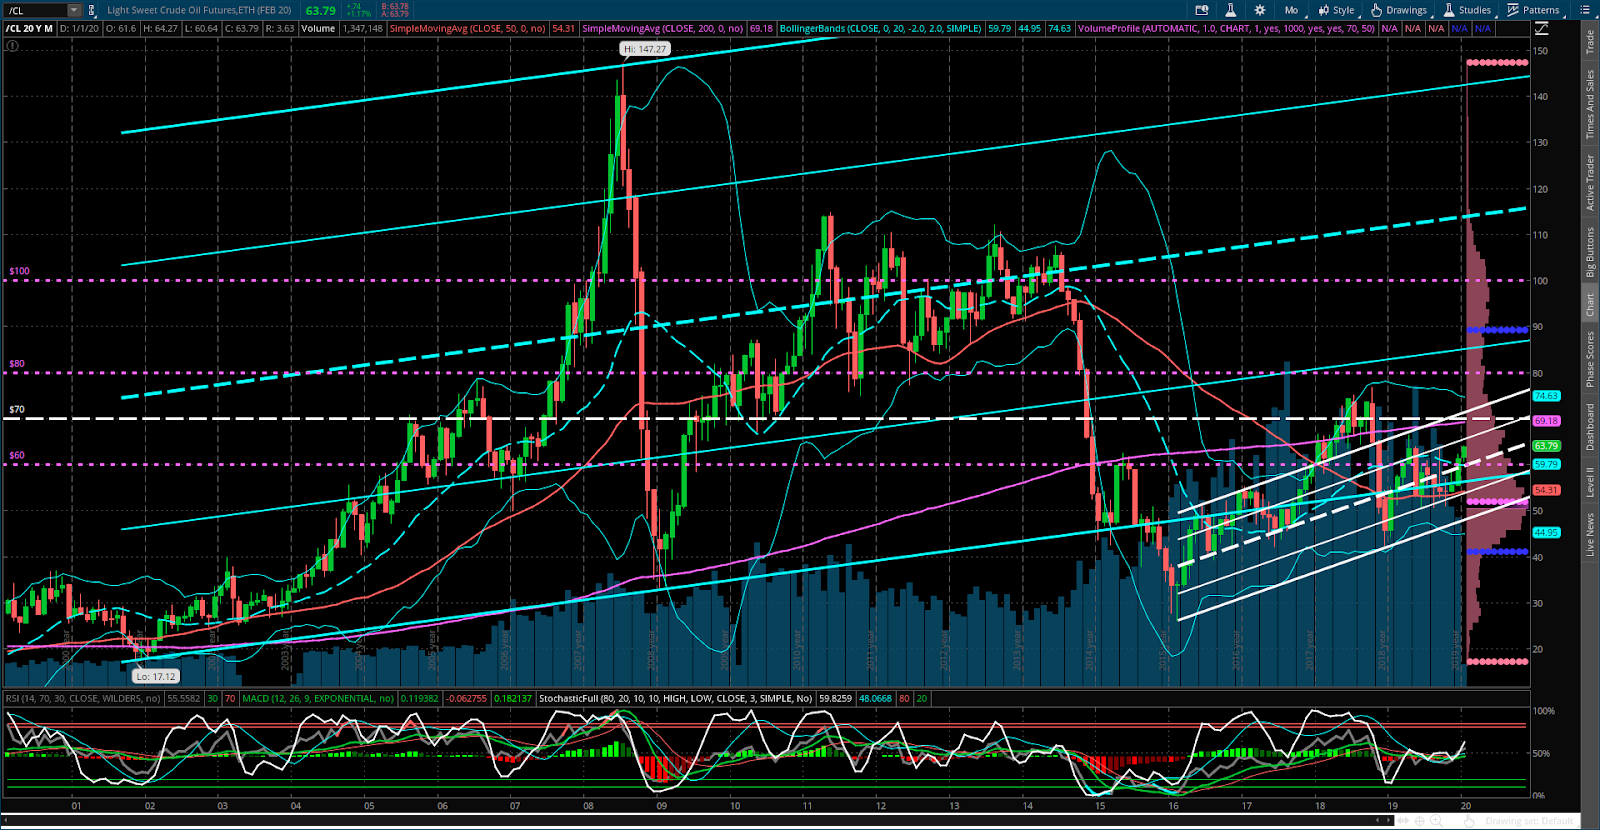 OIL Monthly 2000-2020